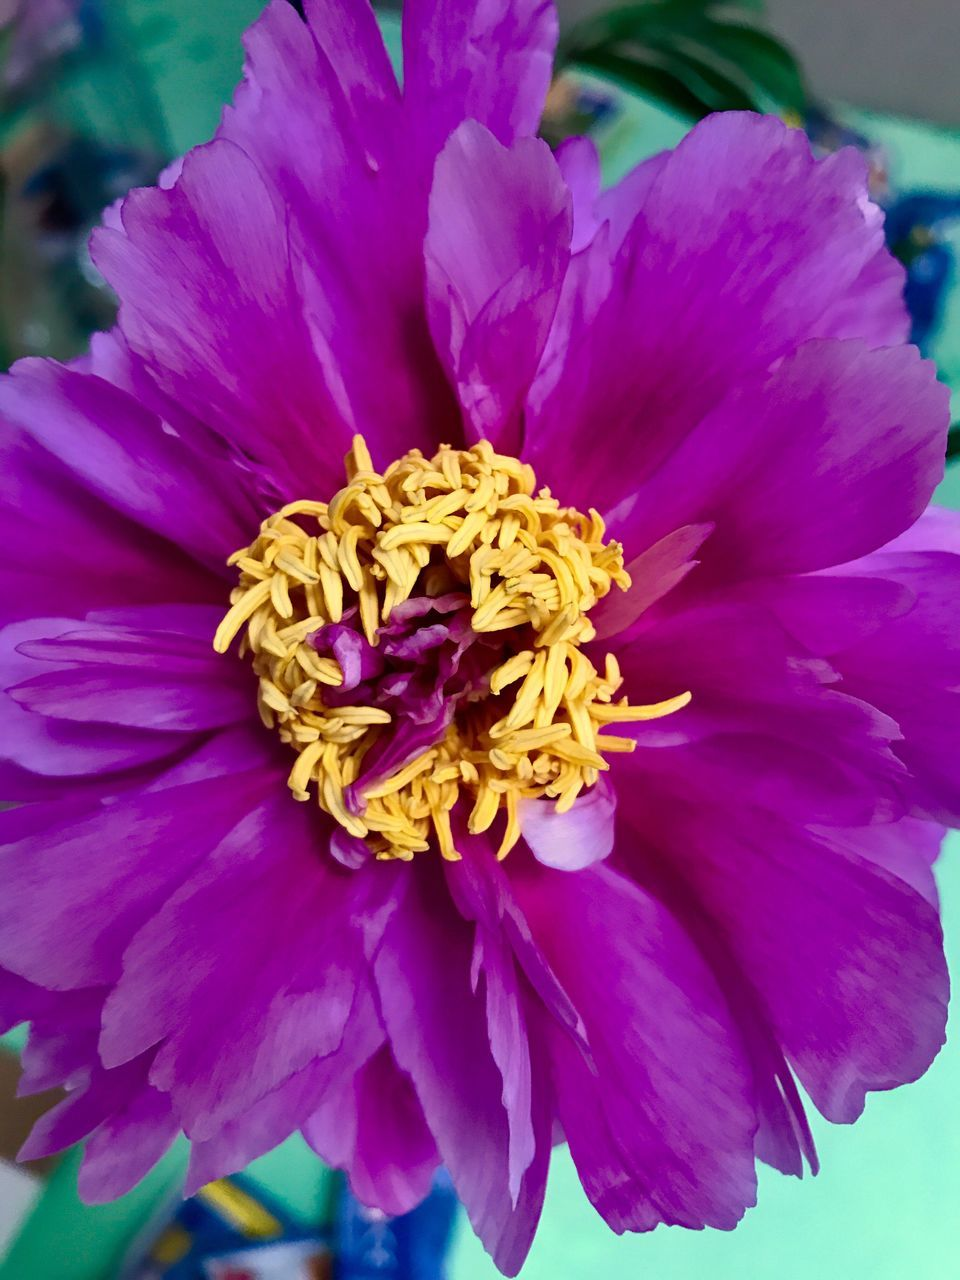 flower, petal, beauty in nature, purple, nature, fragility, flower head, no people, close-up, freshness, growth, plant, outdoors, day, blooming